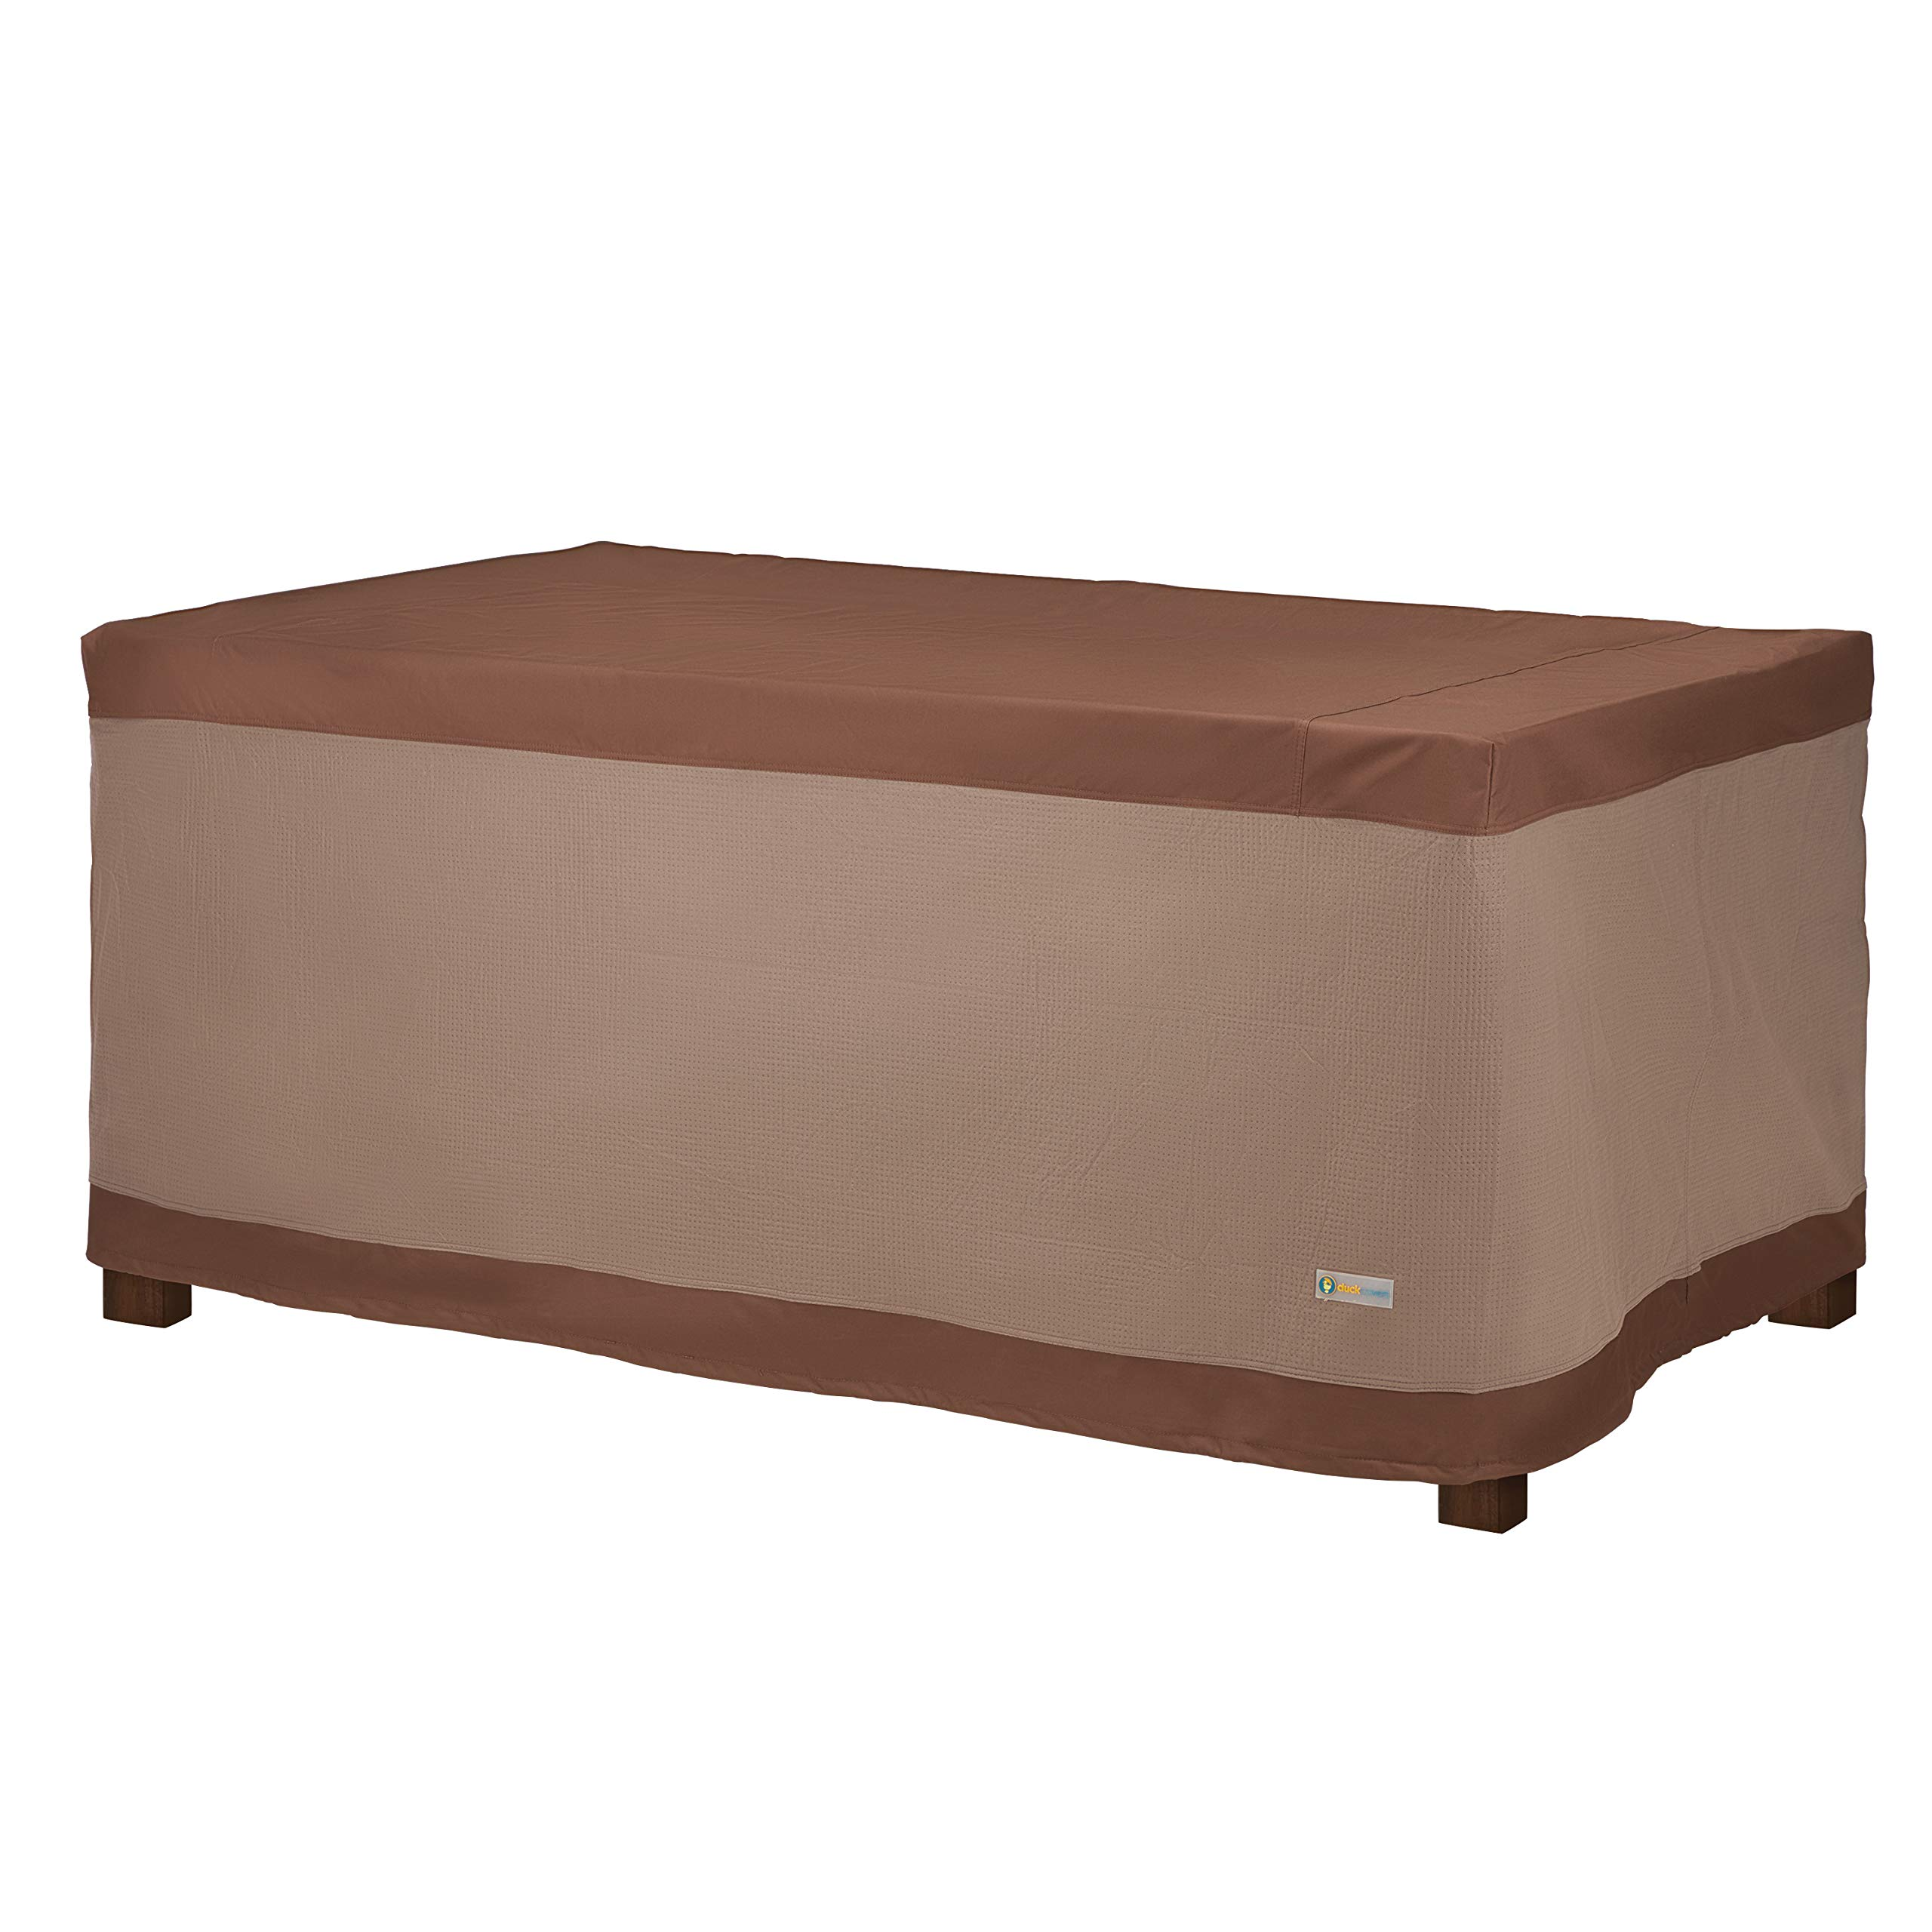 Duck Covers URT744632 Ultimate Rectangular Table Cover 72'' W, Mocha Cappuccino